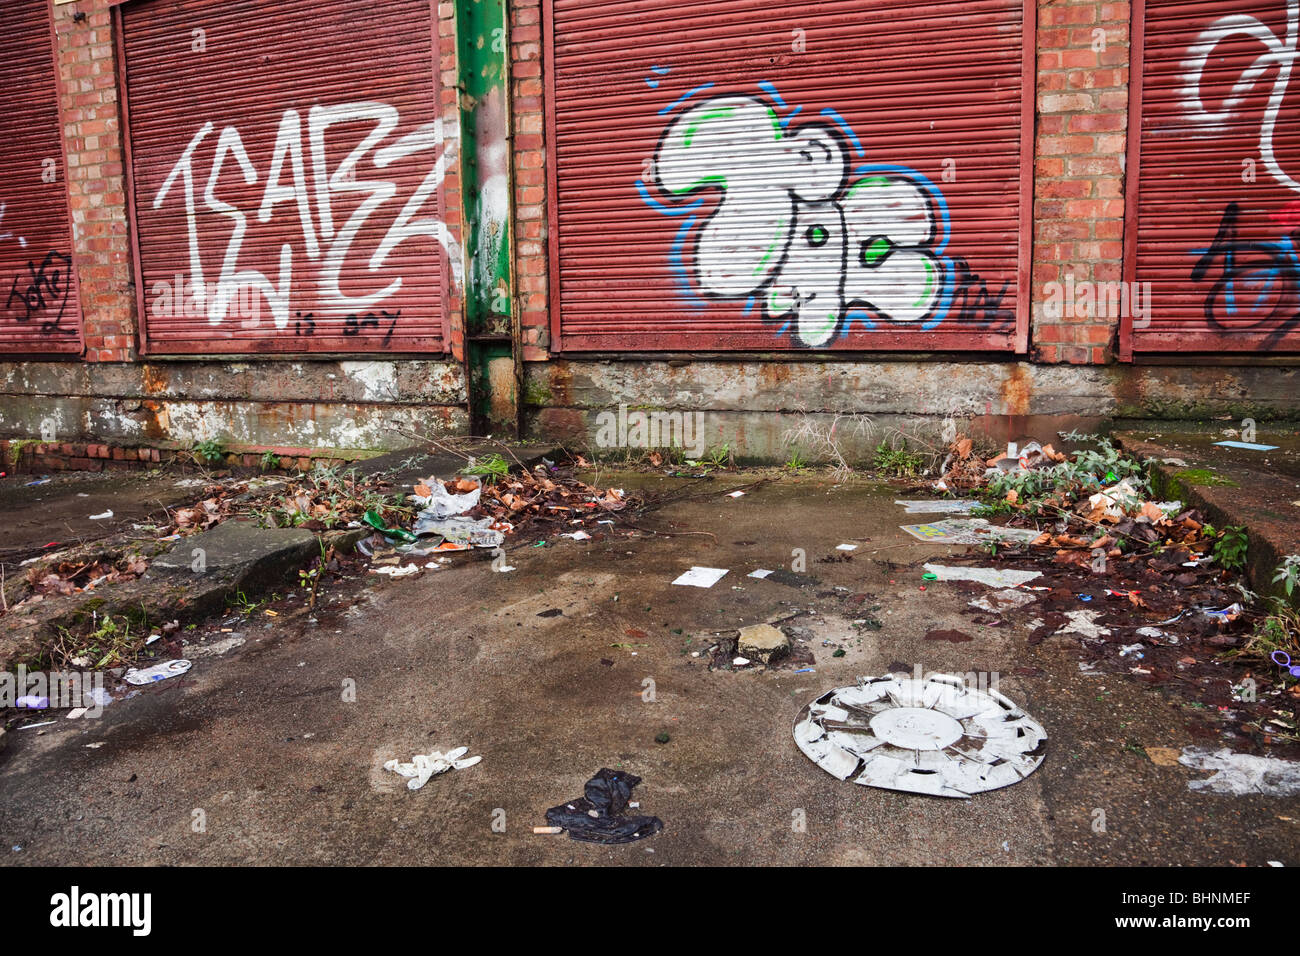 Graffiti on garage doors in urban street scene littered with dumped rubbish. Liverpool, England, UK, Britain. - Stock Image